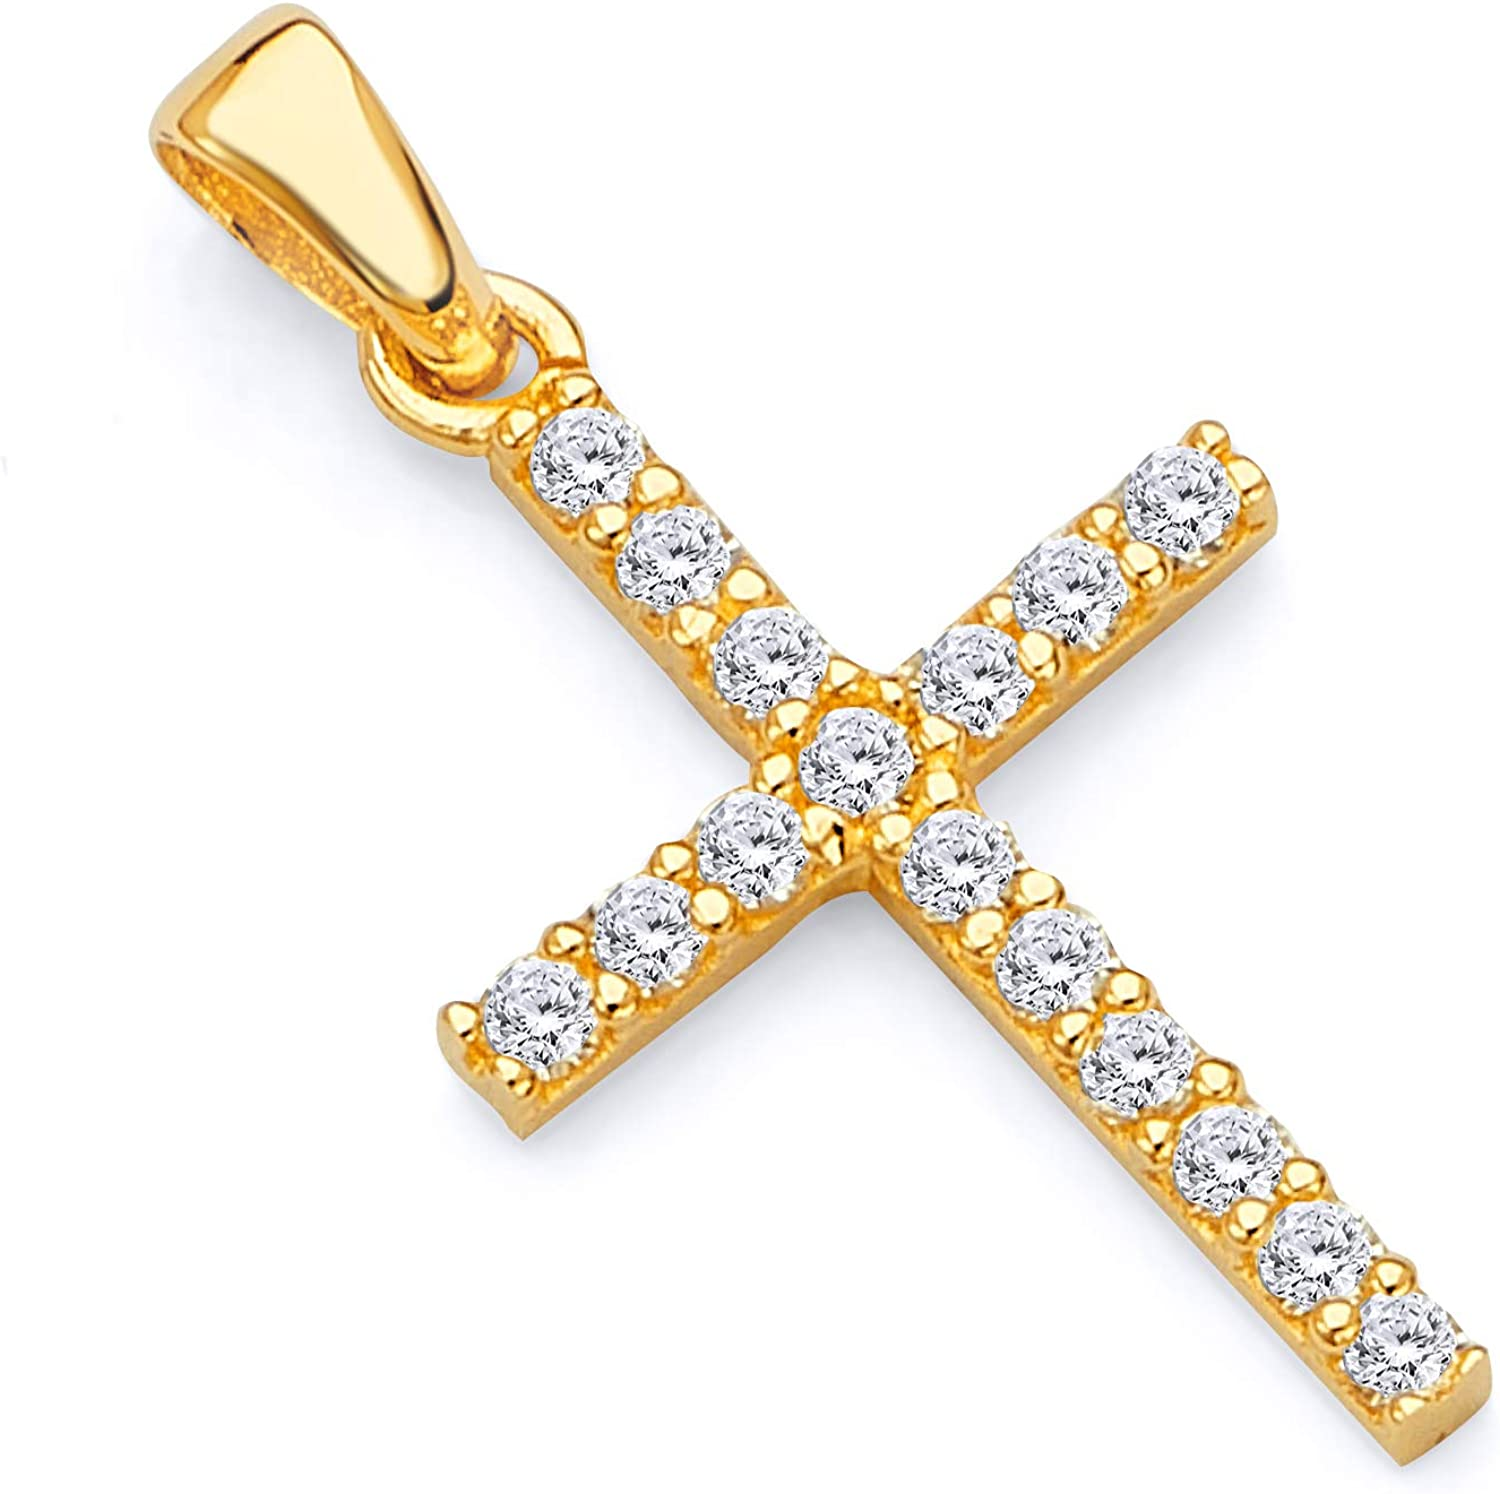 GoldenMine Fine Jewelry Collection 14k White or Yellow Gold Slim Cross CZ Charm Pendant